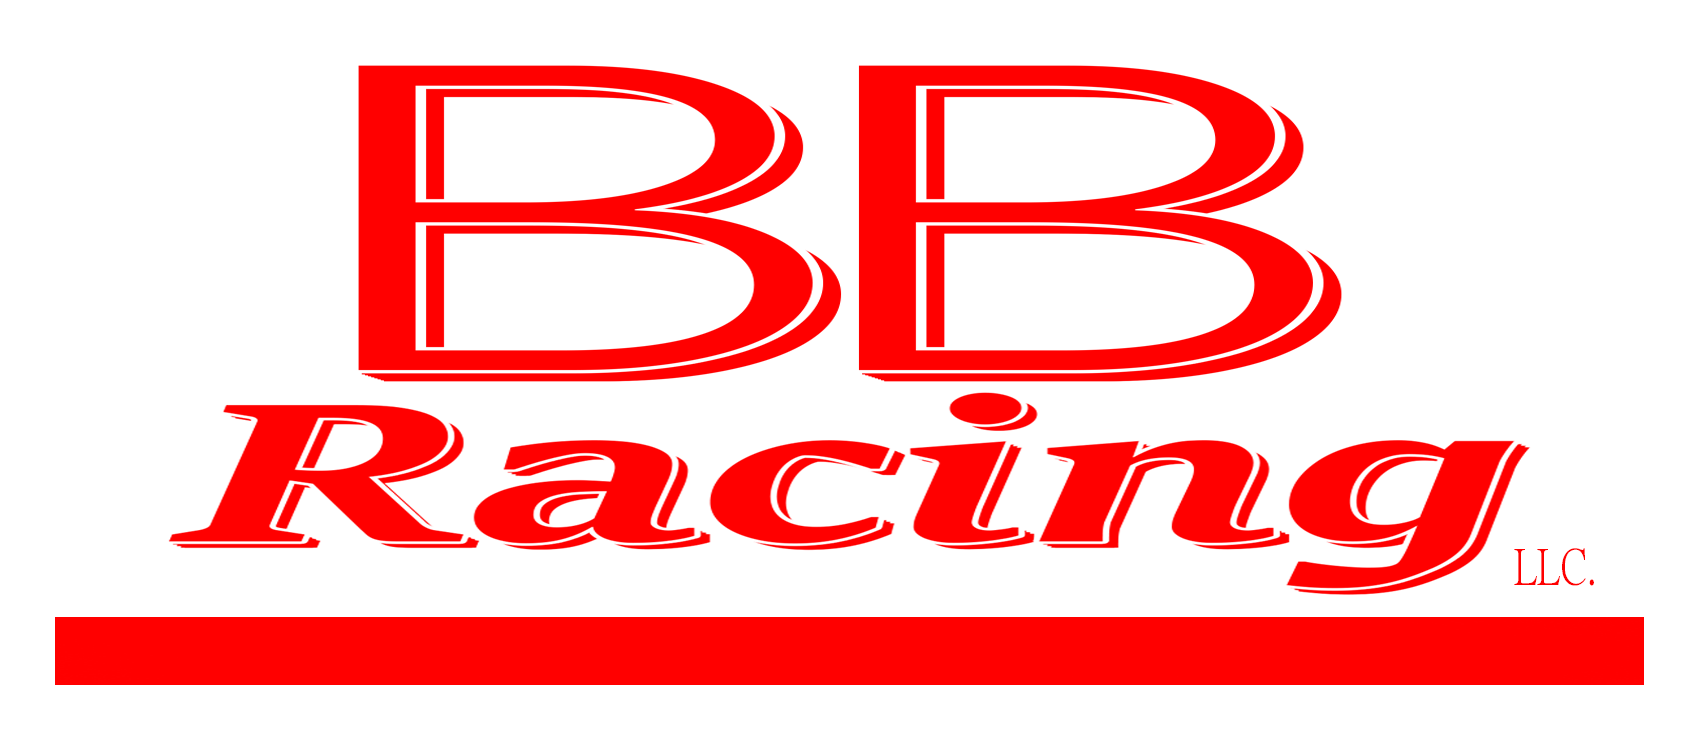 BB Racing Logo